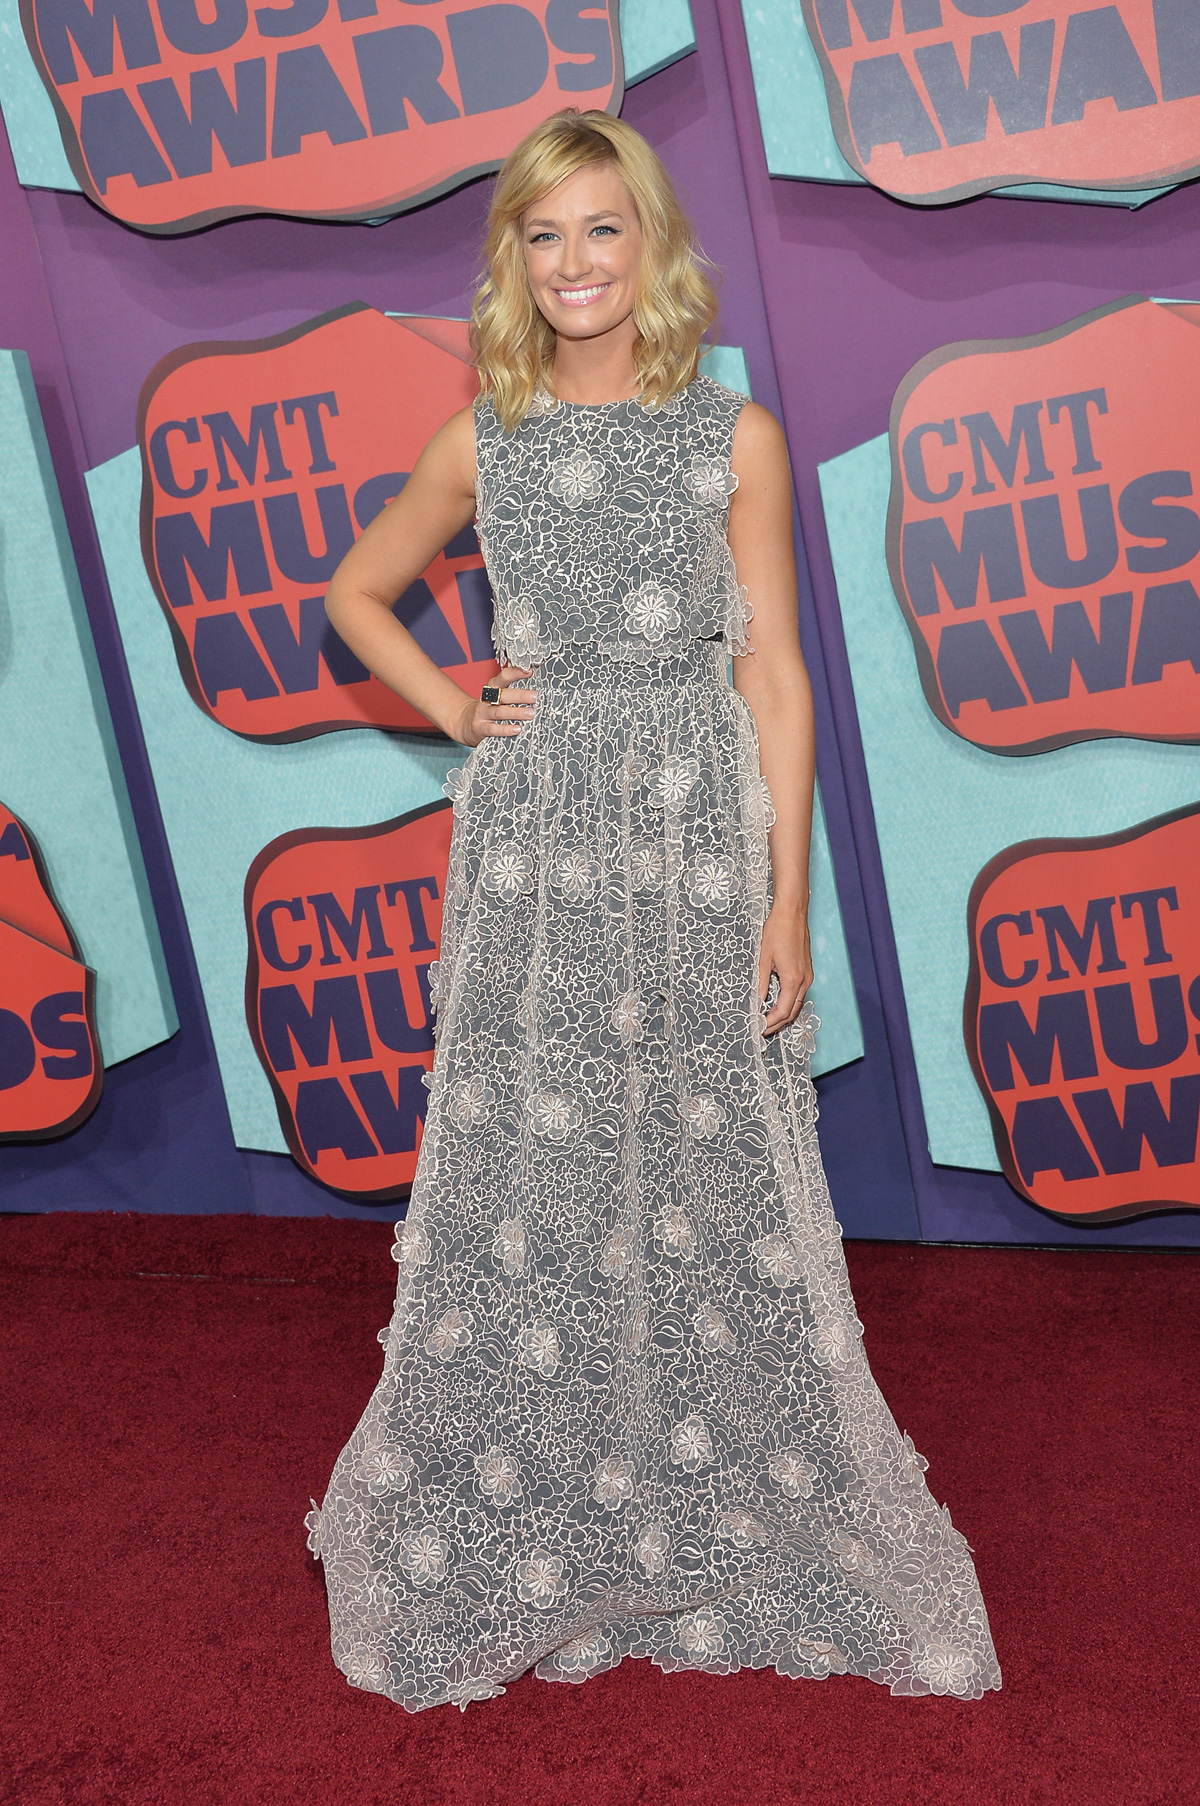 Beth Behrsat the the 2014 CMT Music Awards